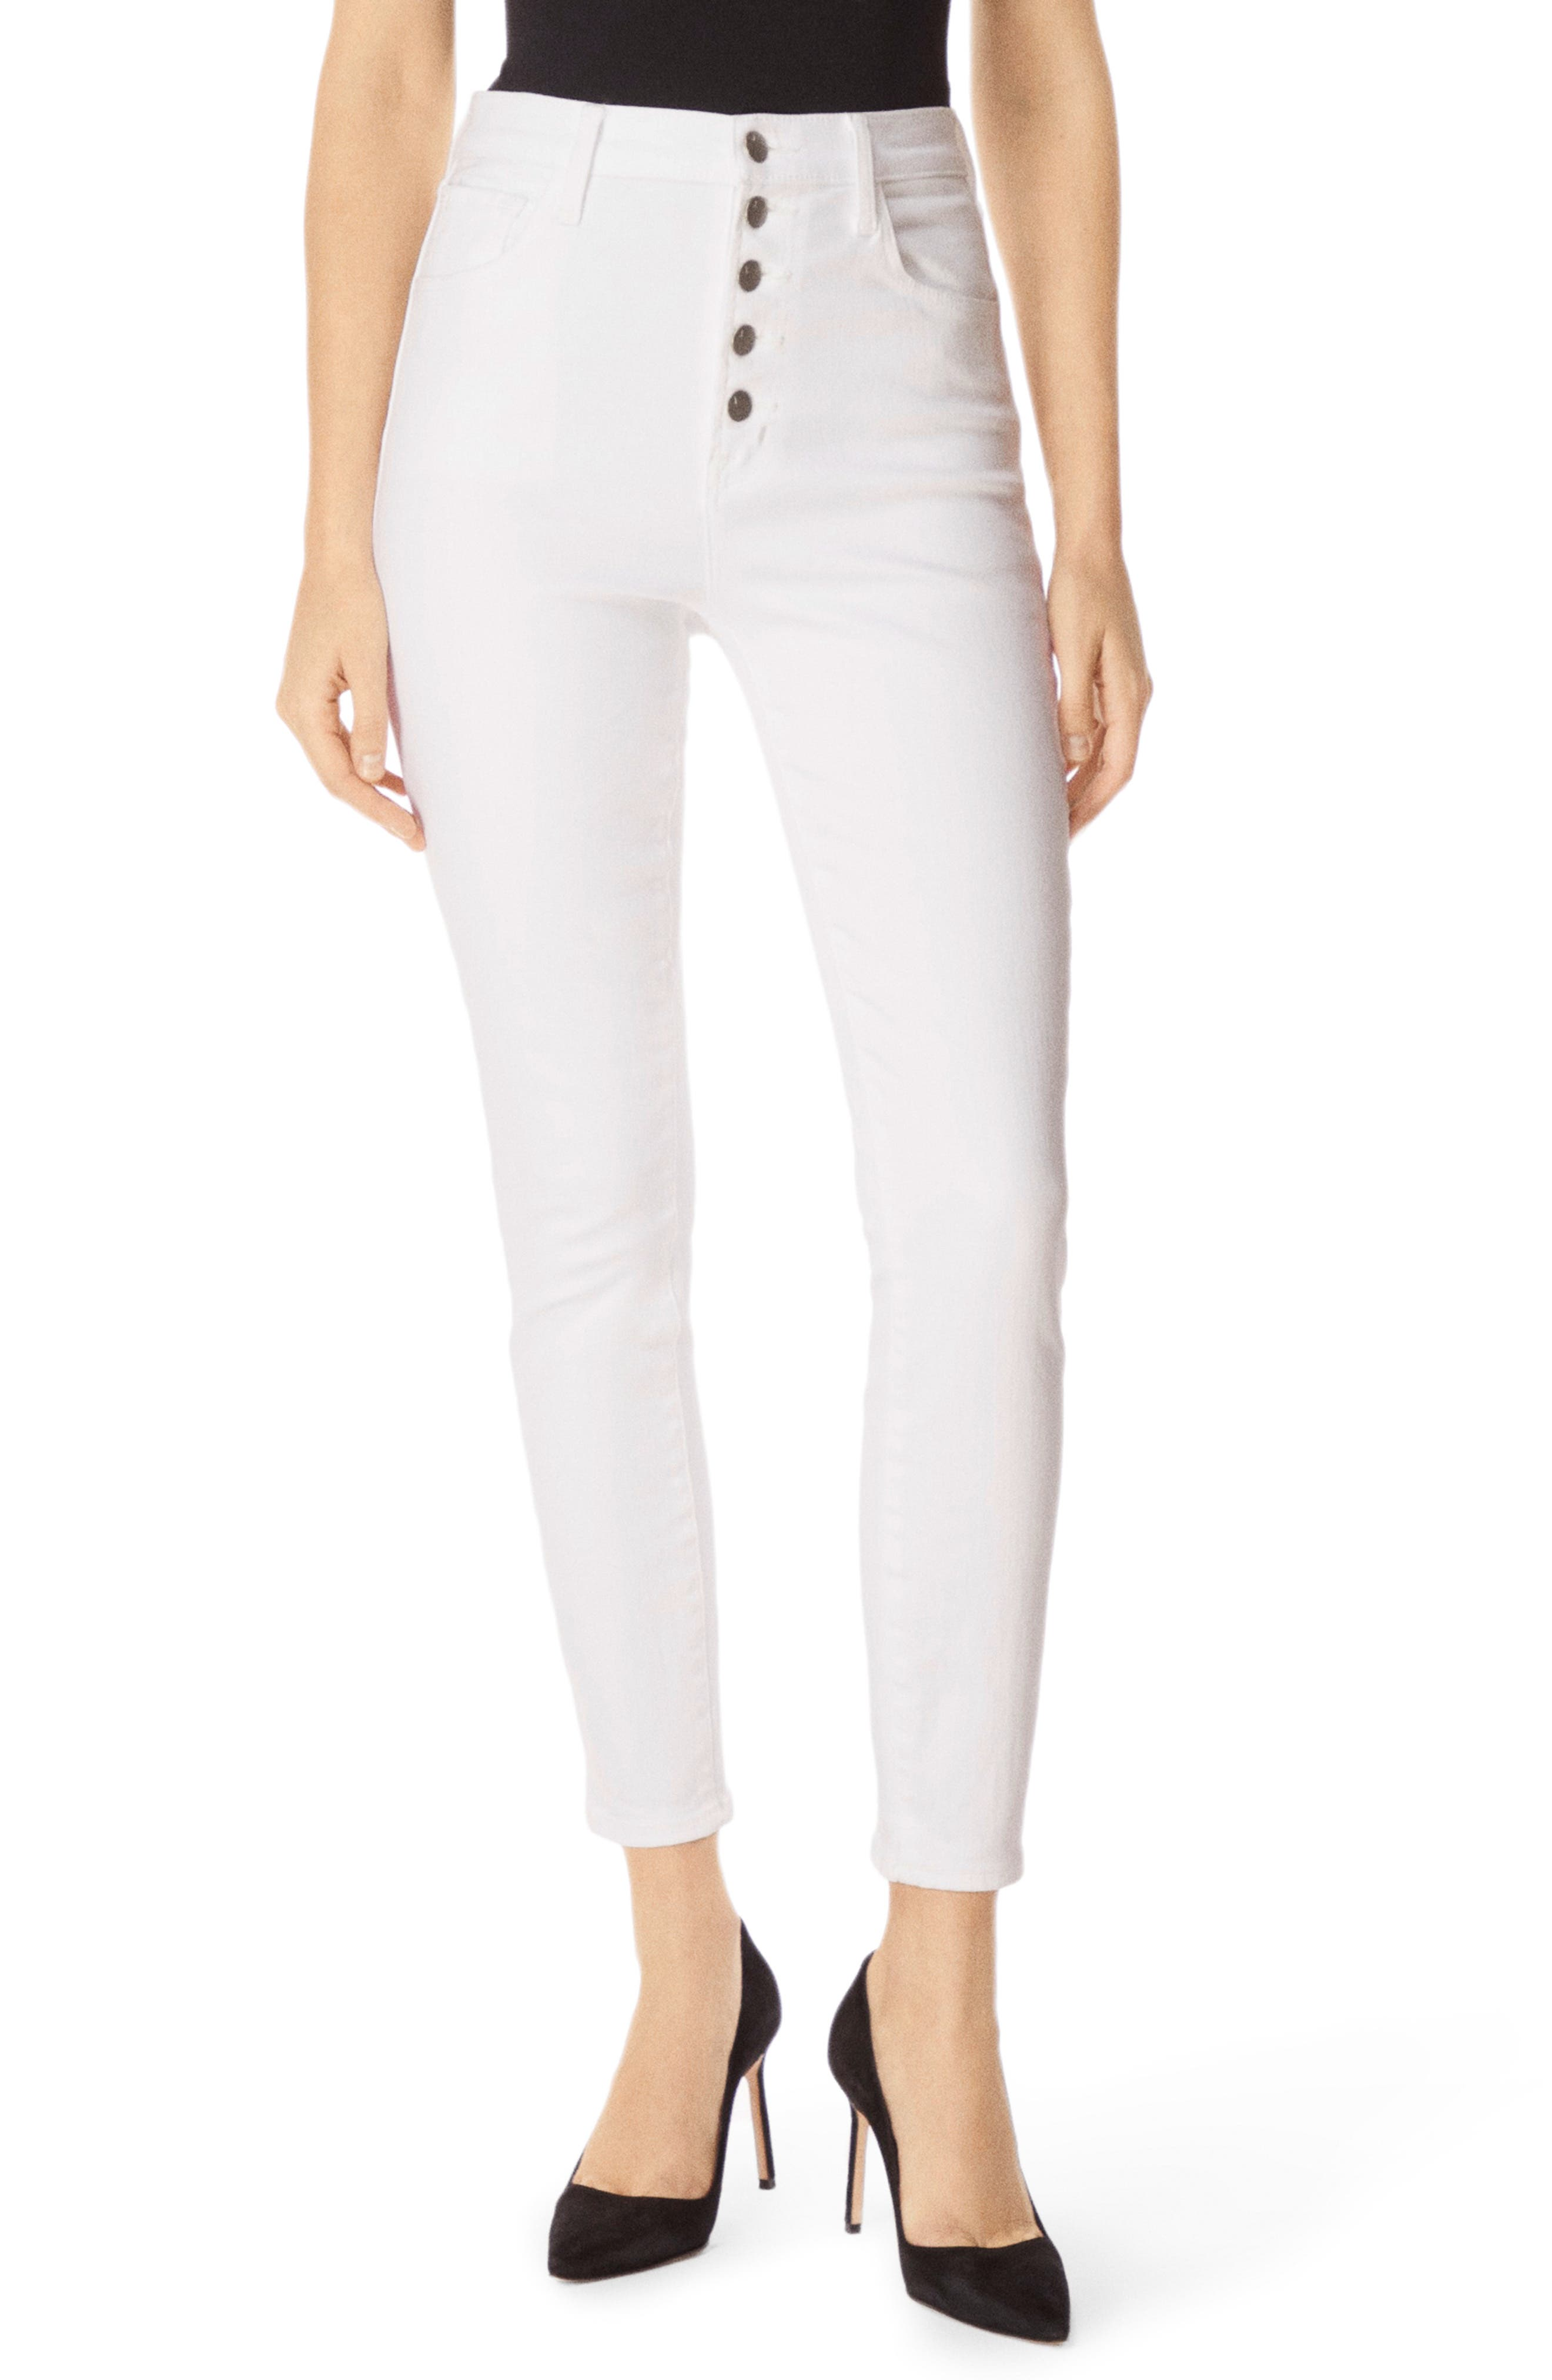 Lillie High Waist Ankle Skinny Jeans,                             Main thumbnail 1, color,                             WHITE